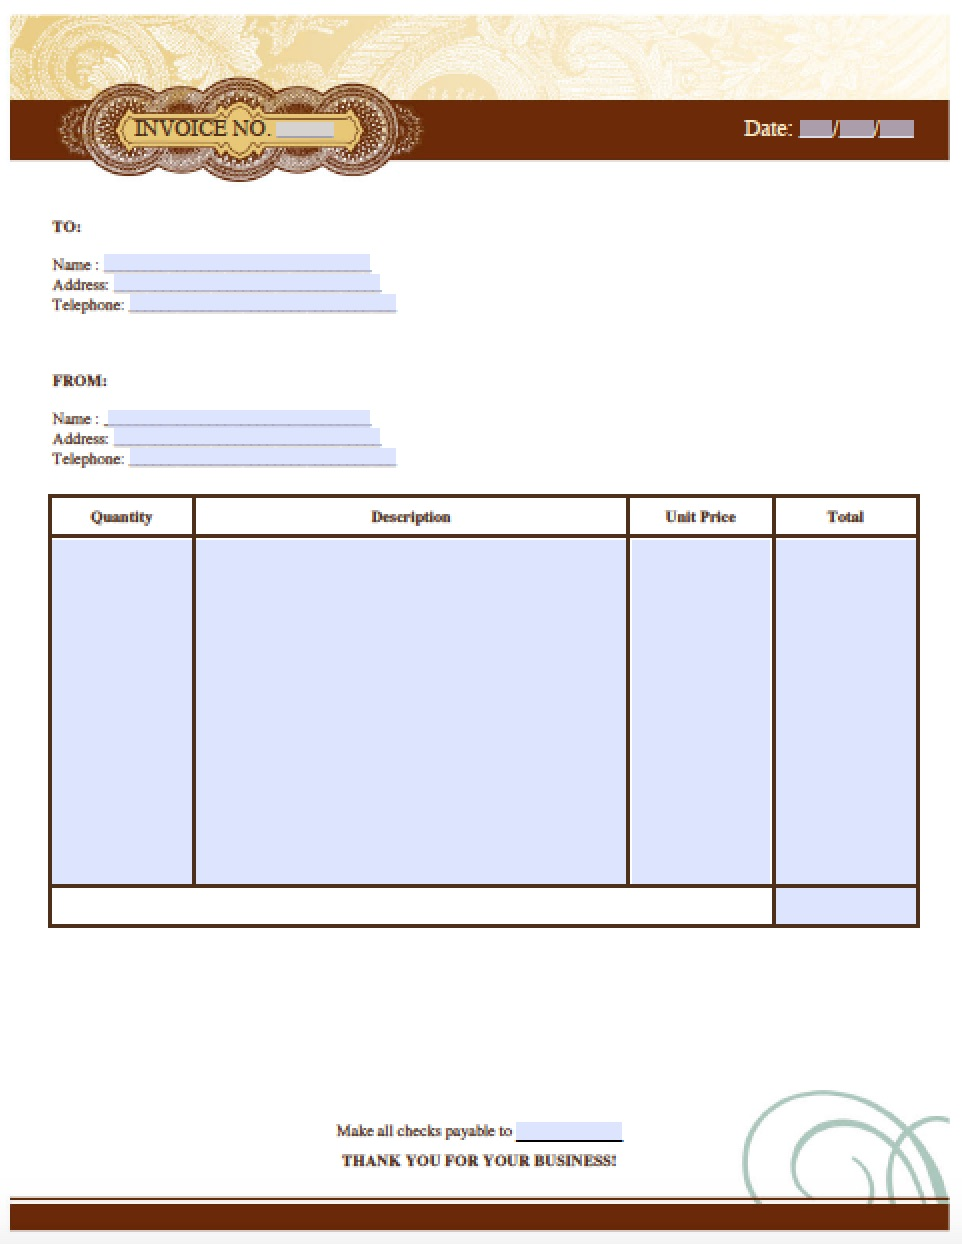 Free Artist Invoice Template Excel PDF Word Doc - Create free invoice template for service business